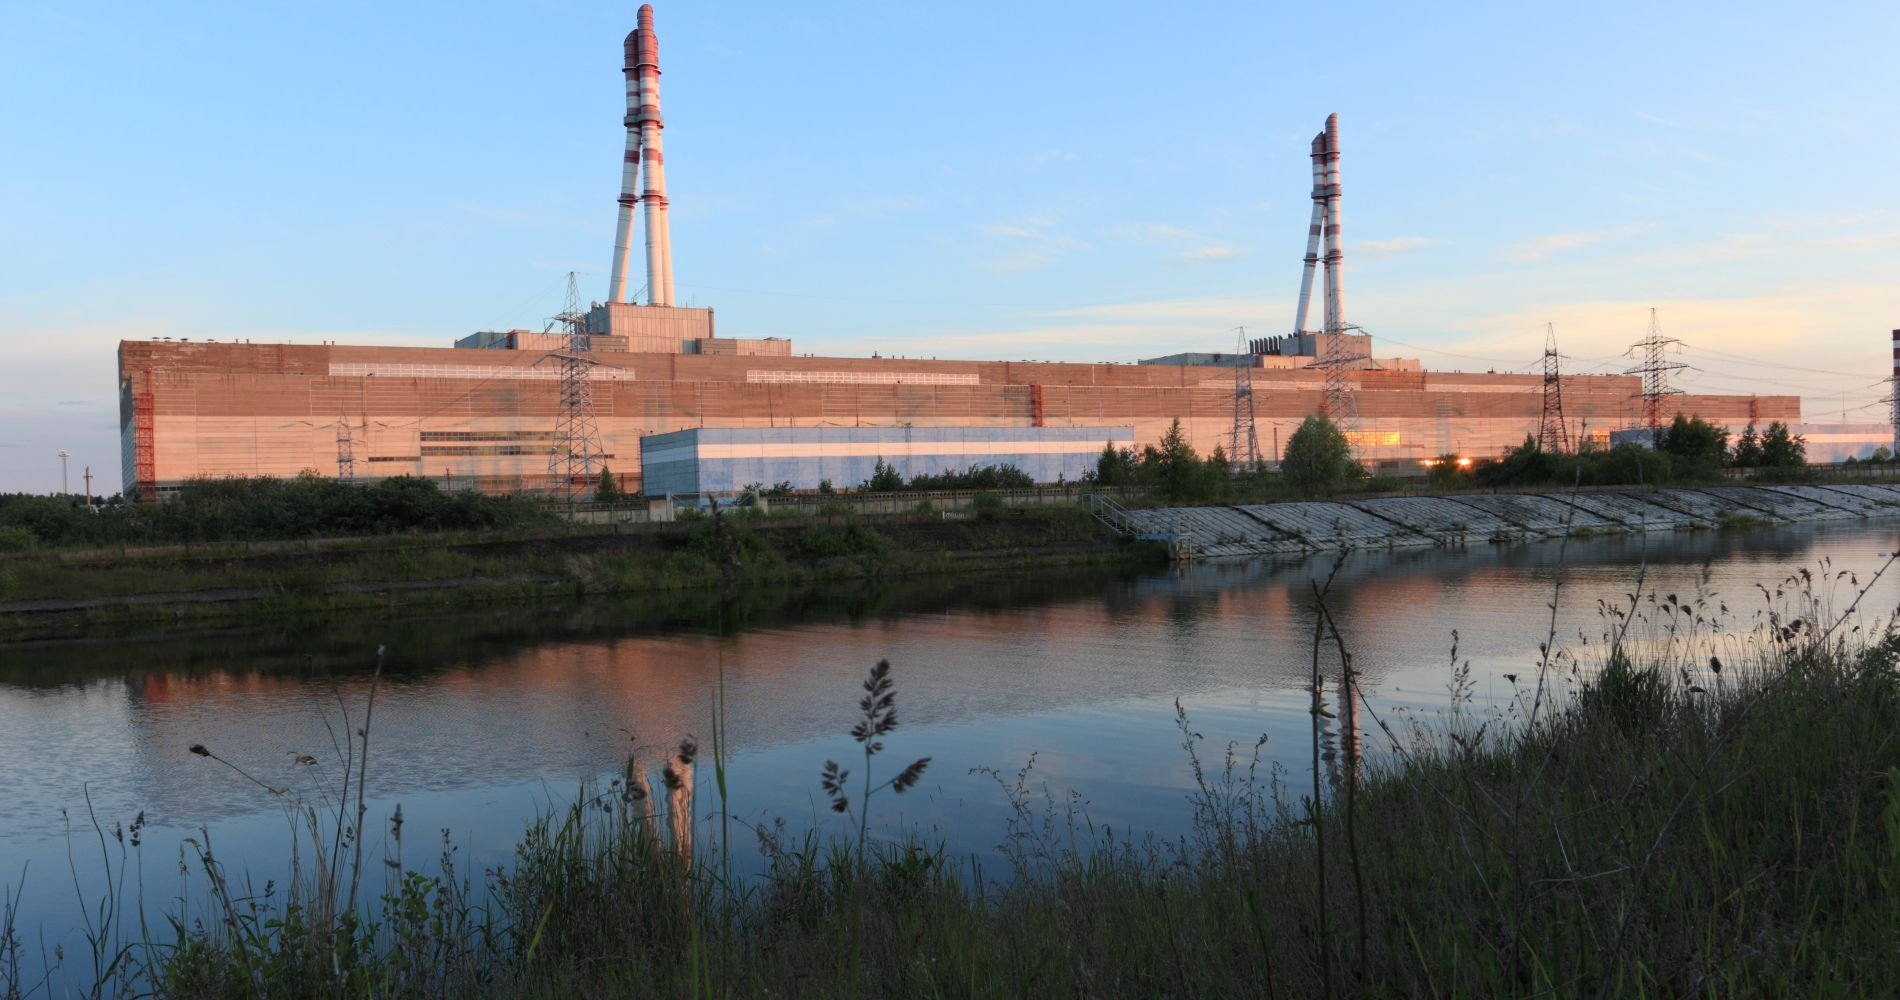 Tour of Lithuania's Nuclear Power Plant